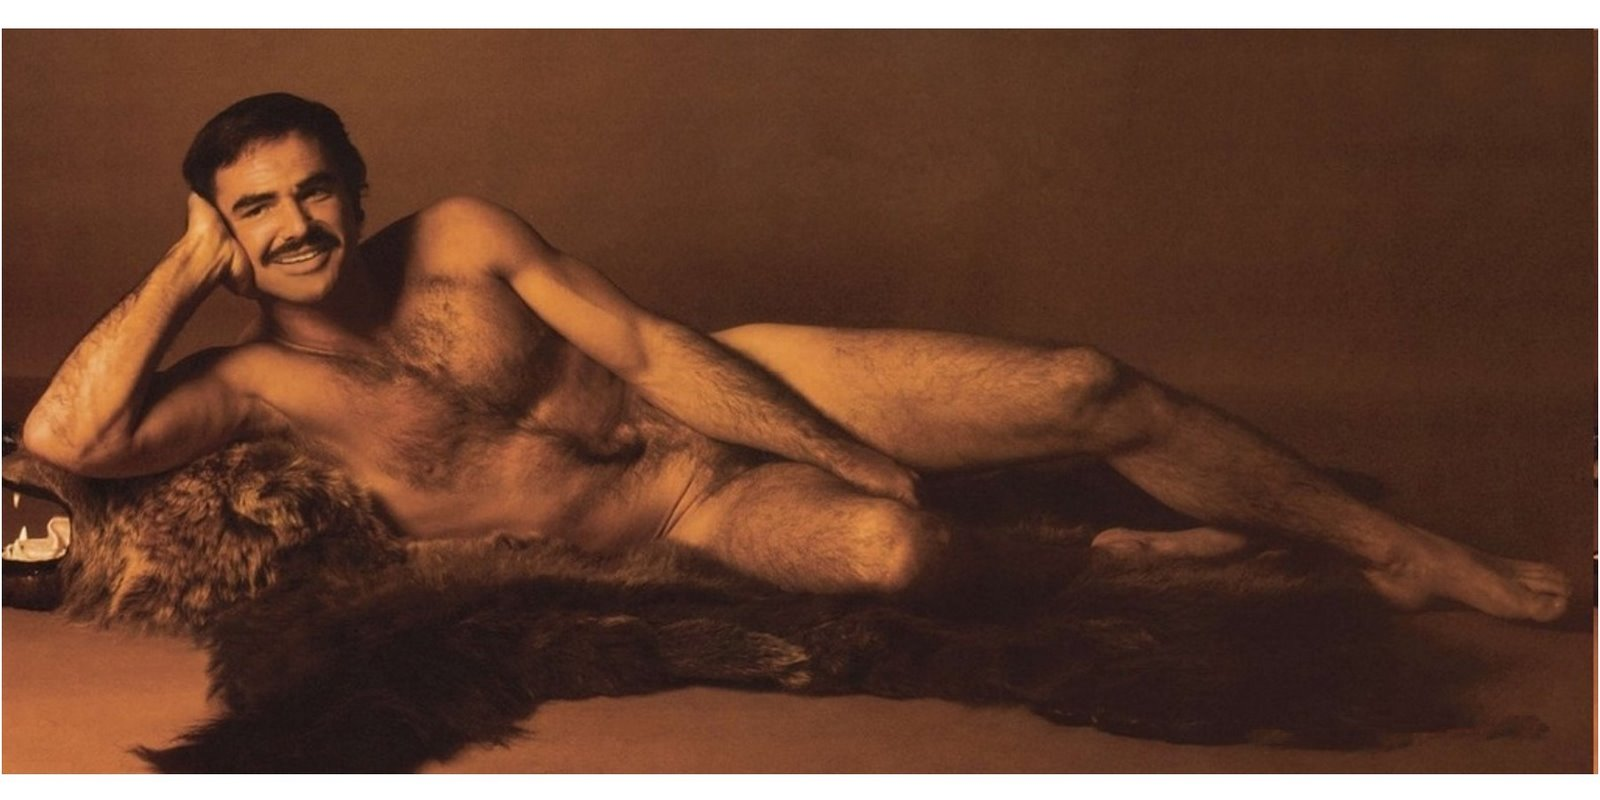 Pictures Of Burt Reynolds In The Nude 98